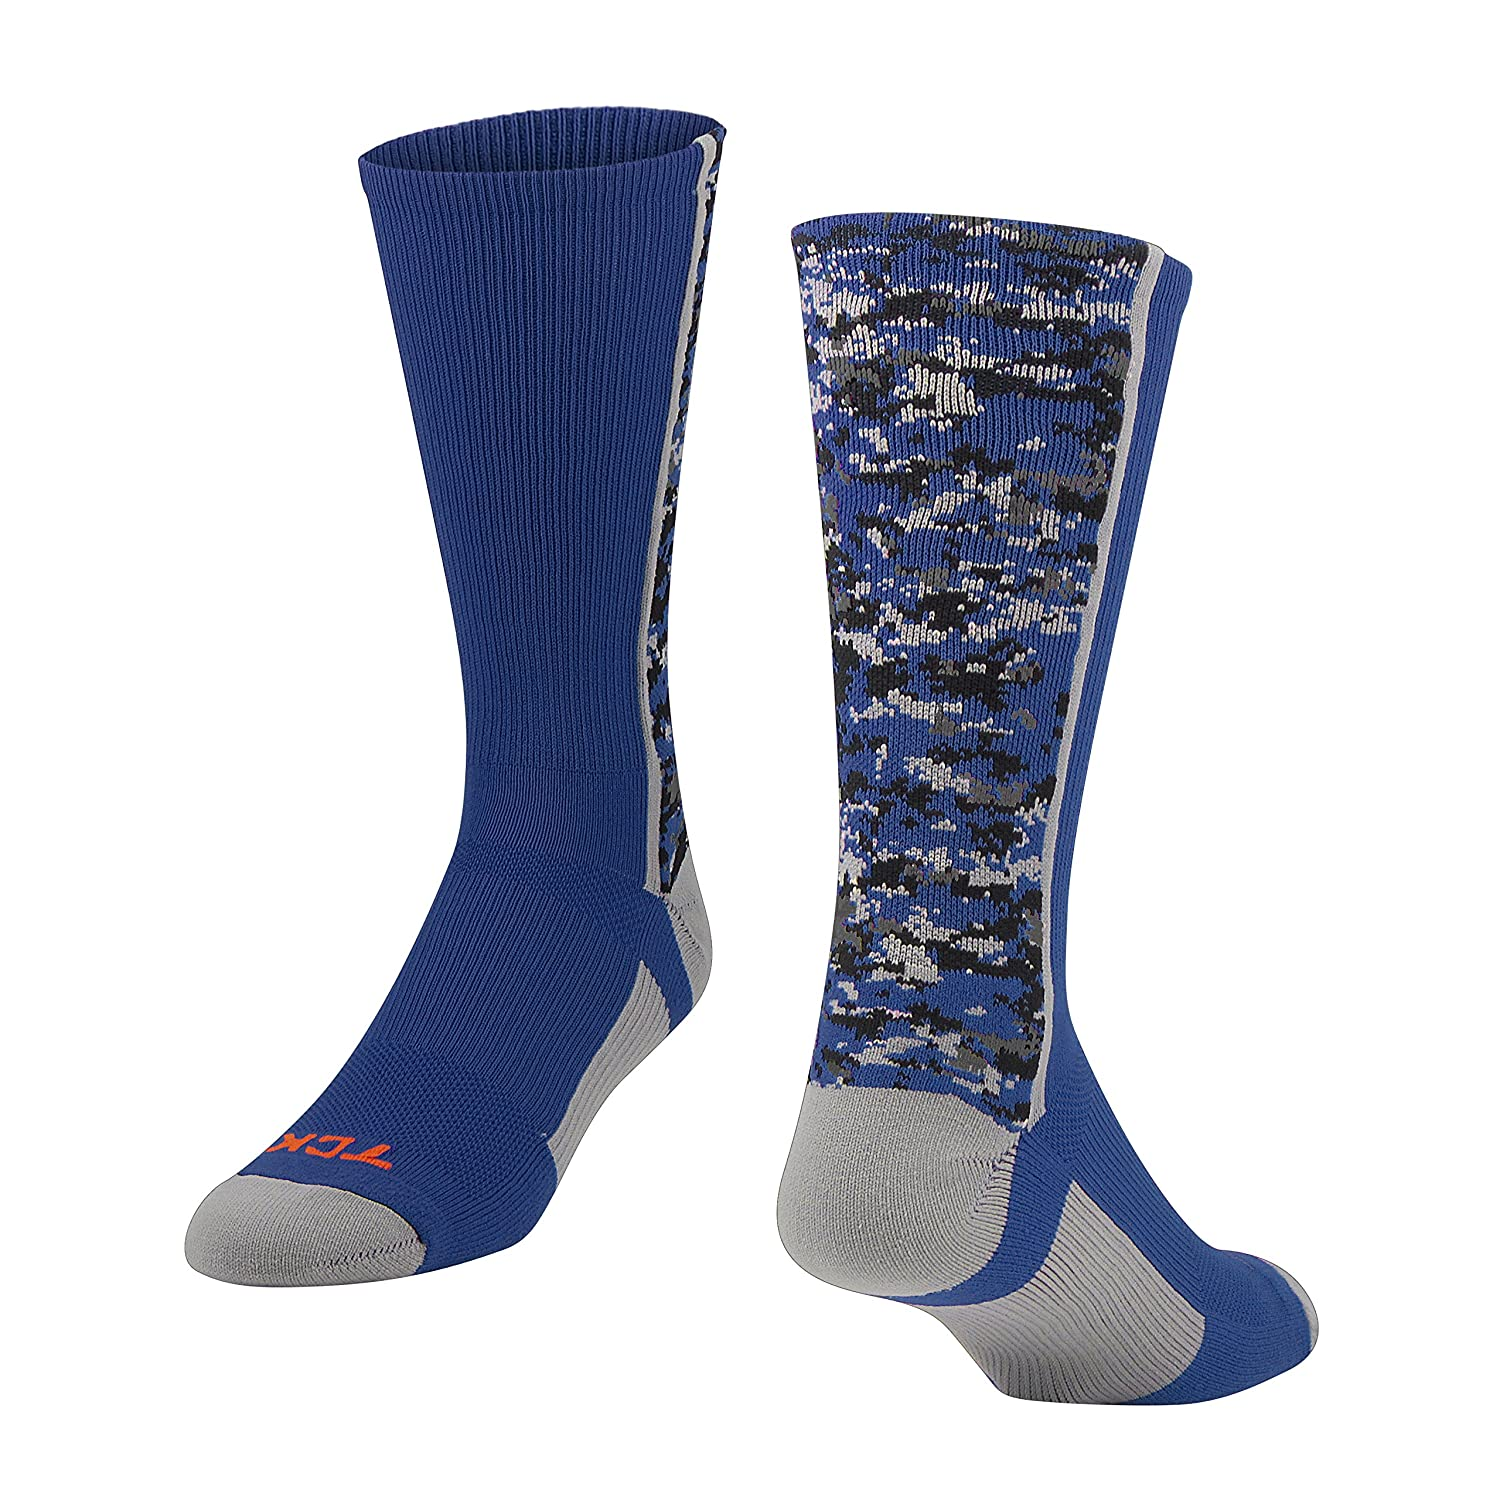 TCK Digital Camo Crew Socks play doh игровой набор магазинчик домашних питомцев